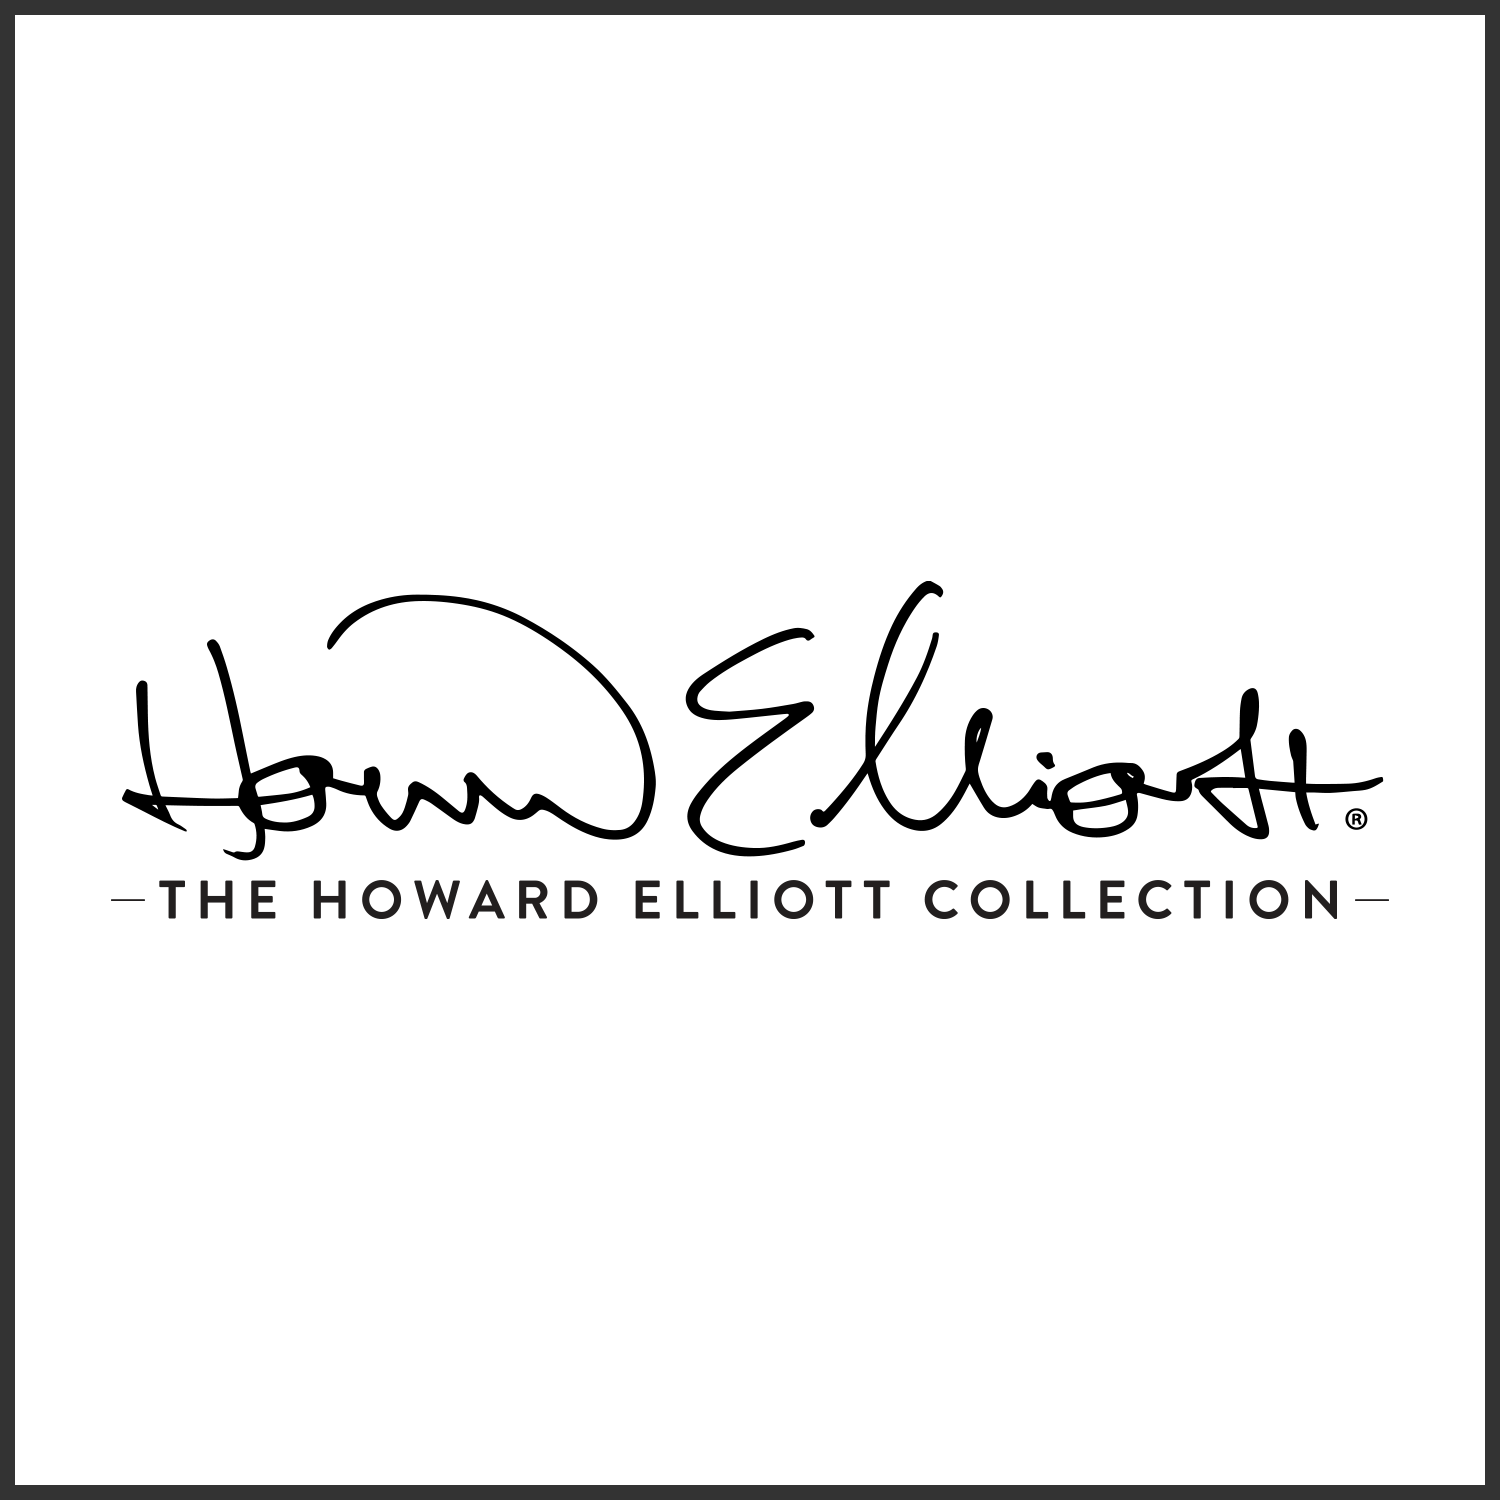 Howard Elliott Collection